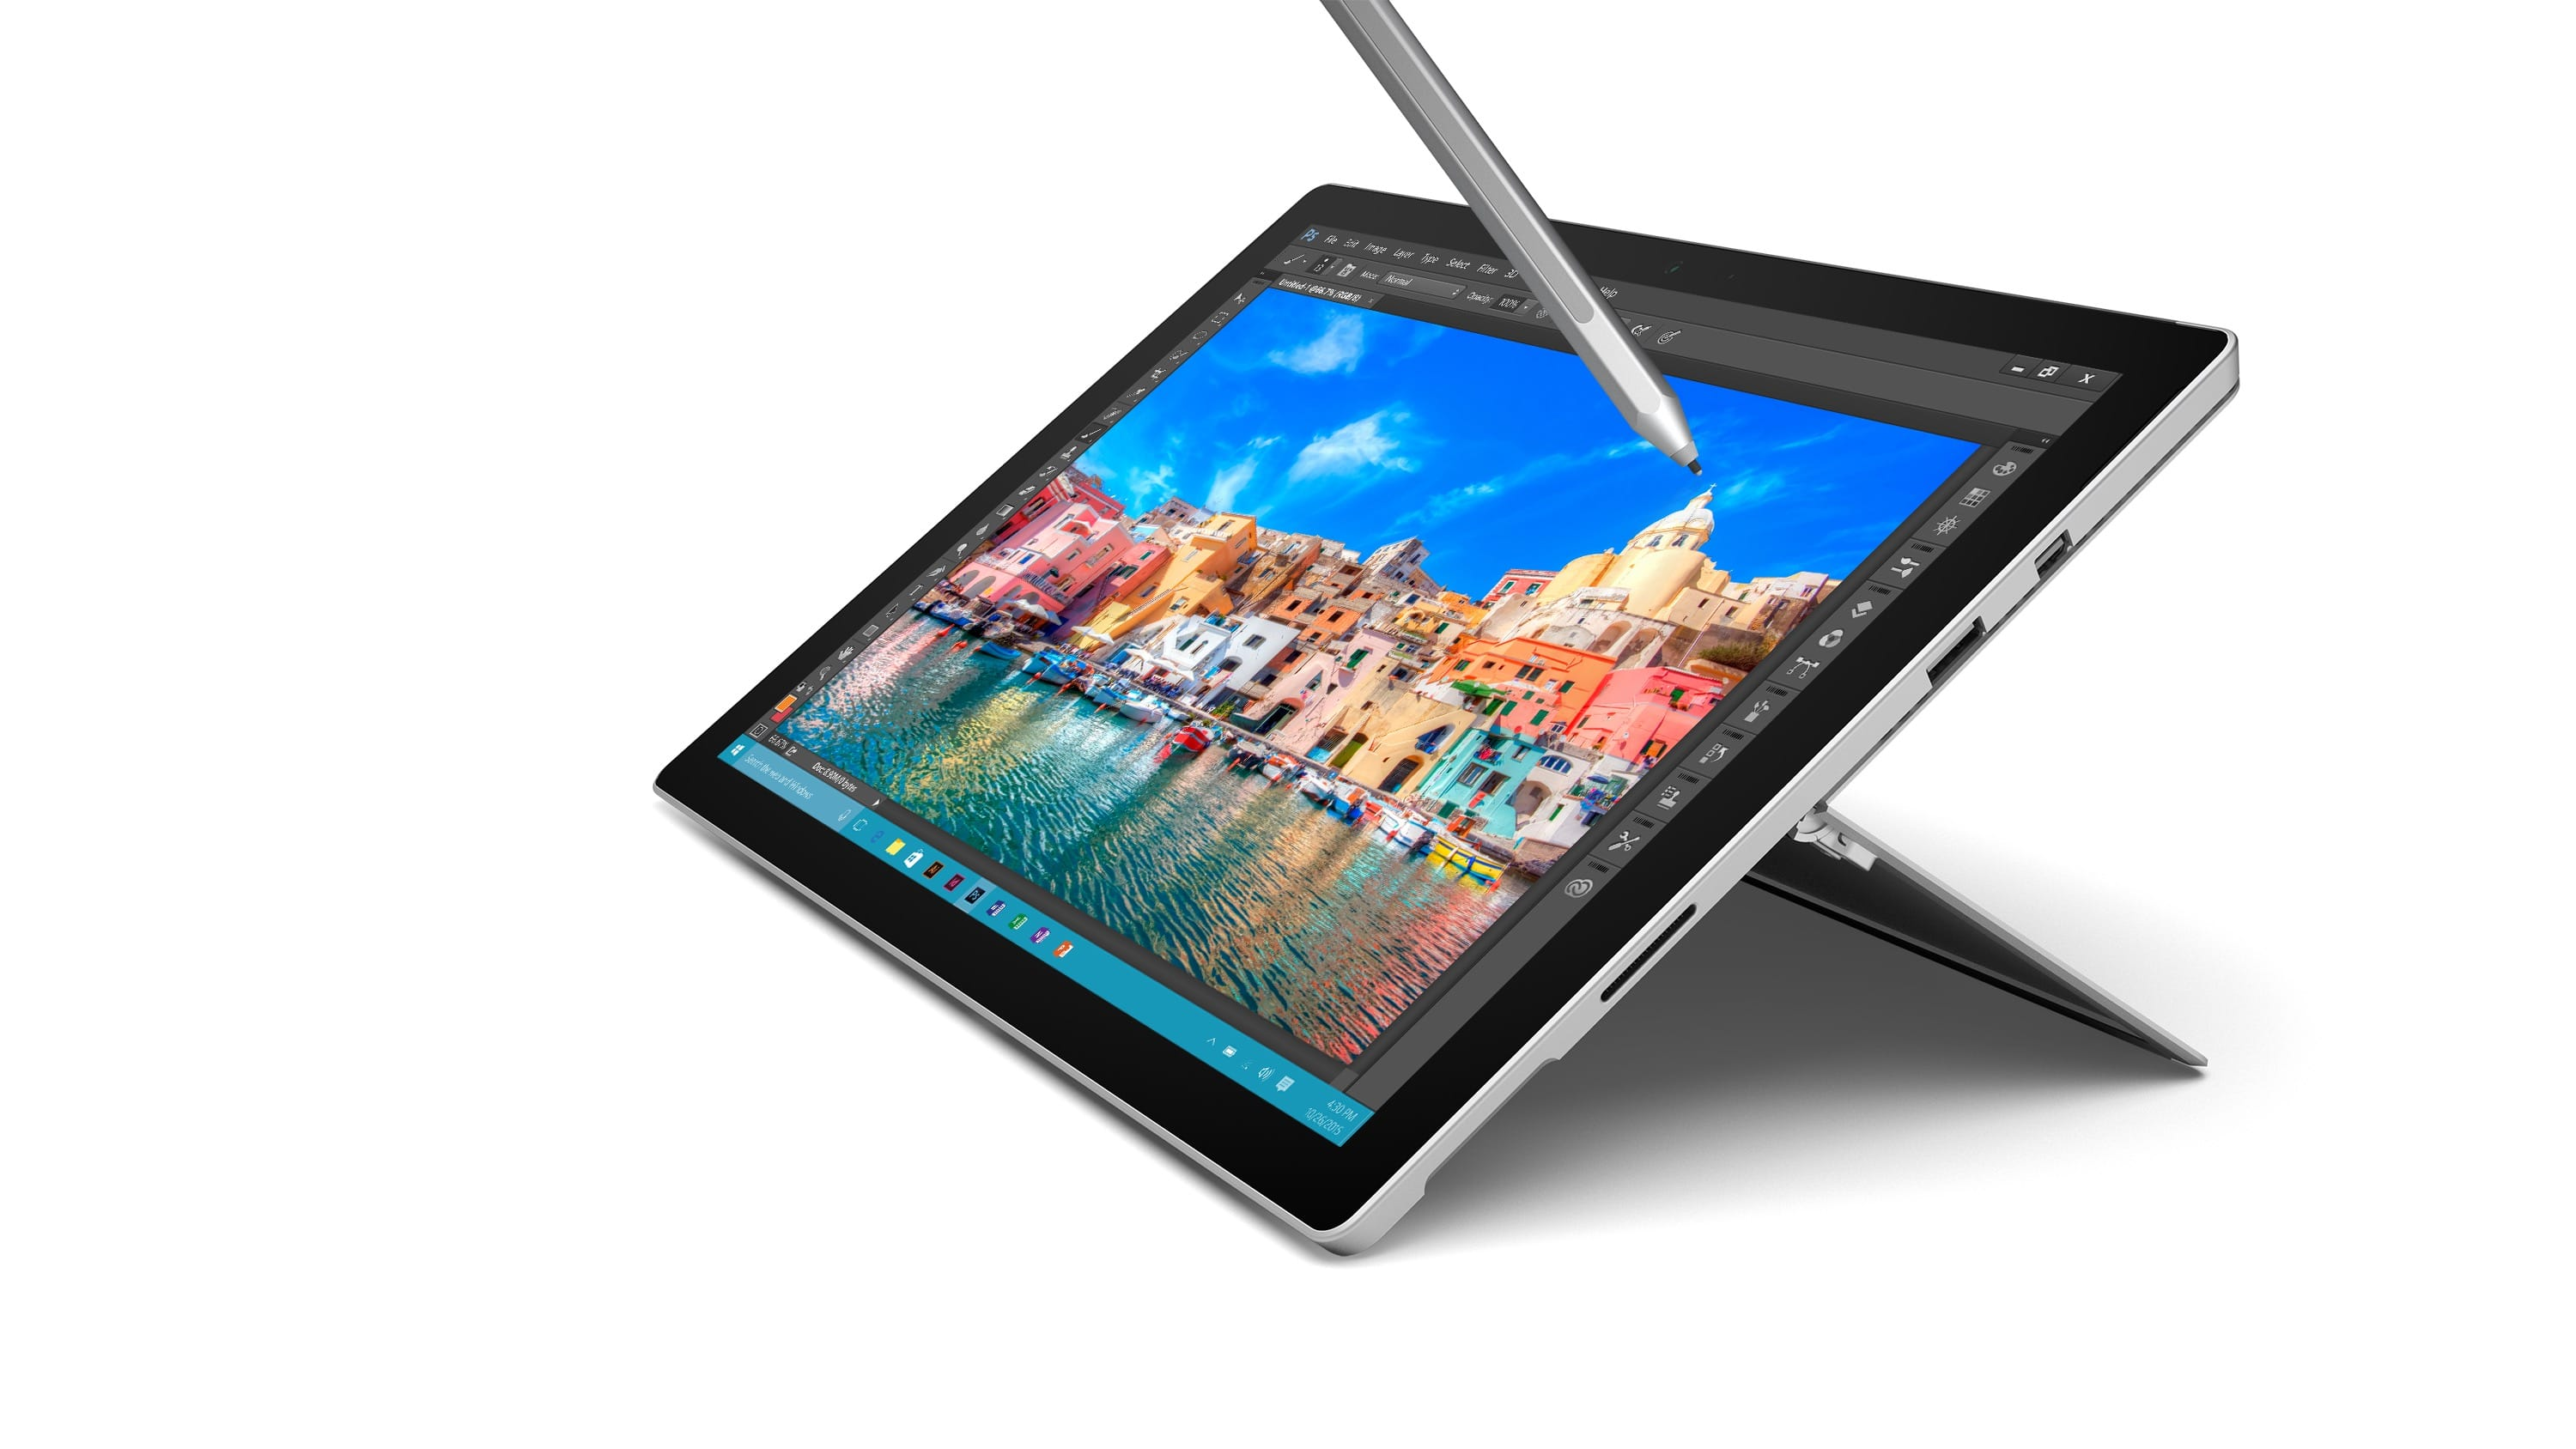 Microsoft-Surface-Pro-4-10-hero